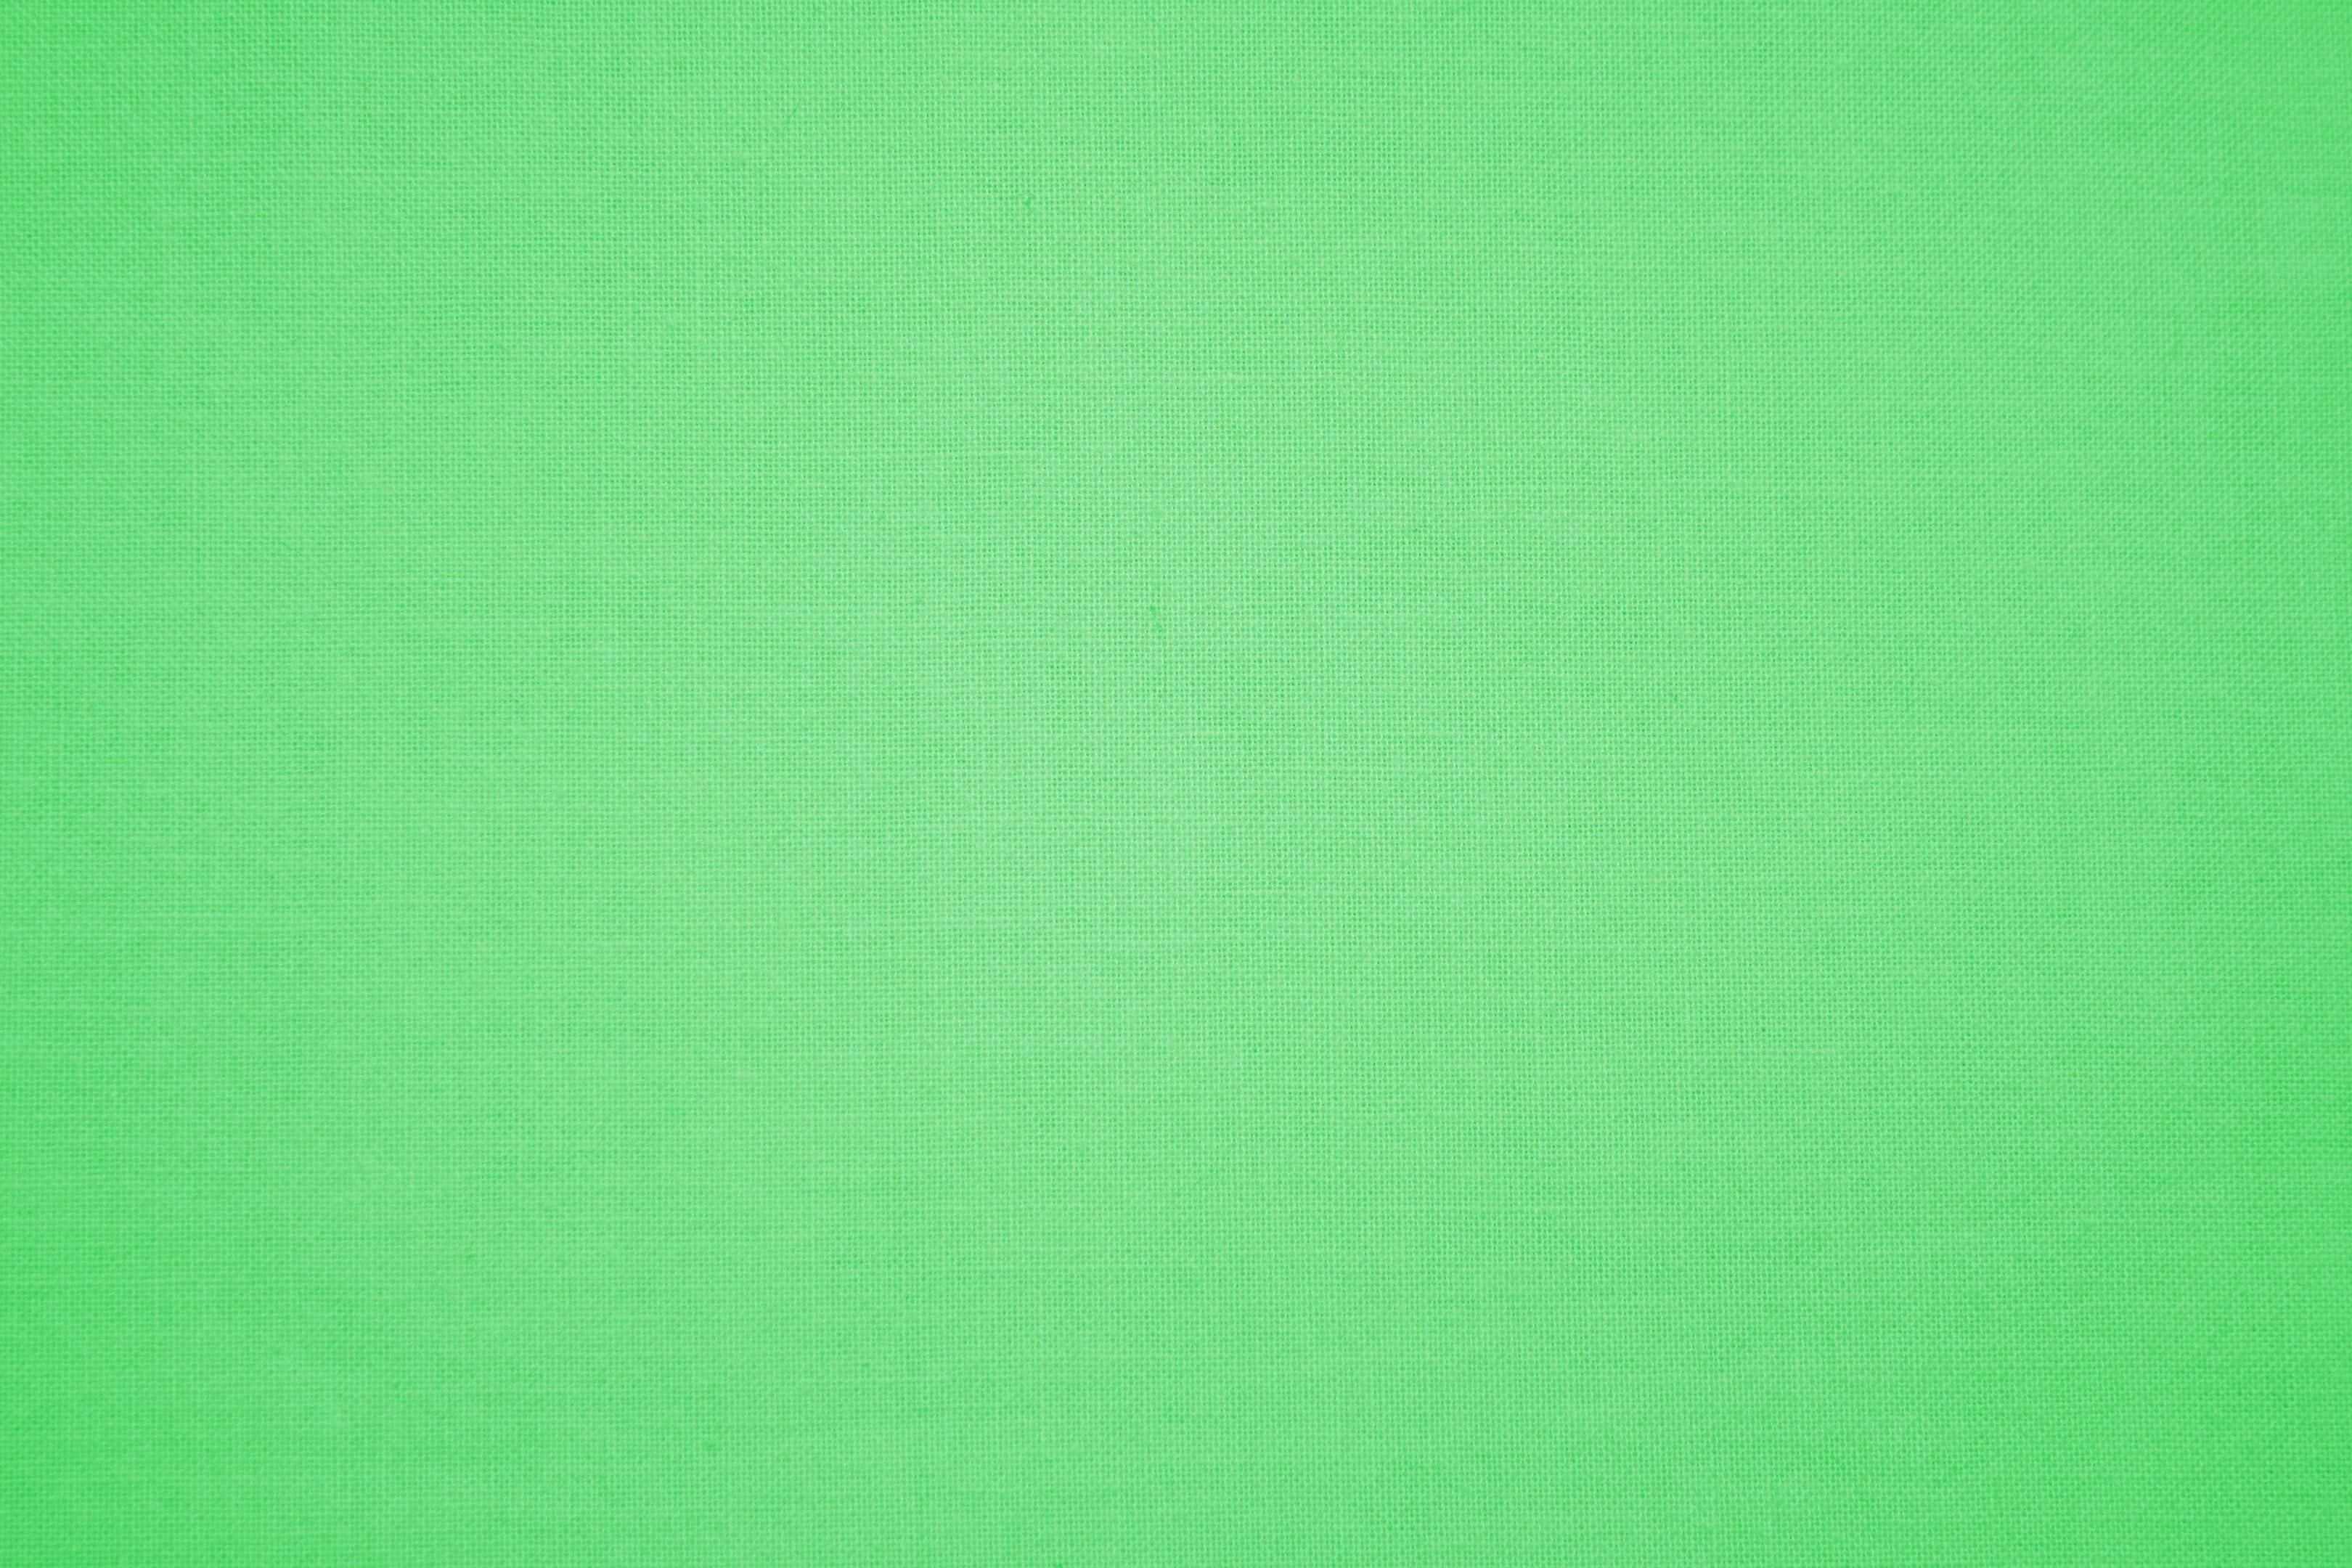 3240x2160 ... Image Green Background Ground Wallpaper Back ...